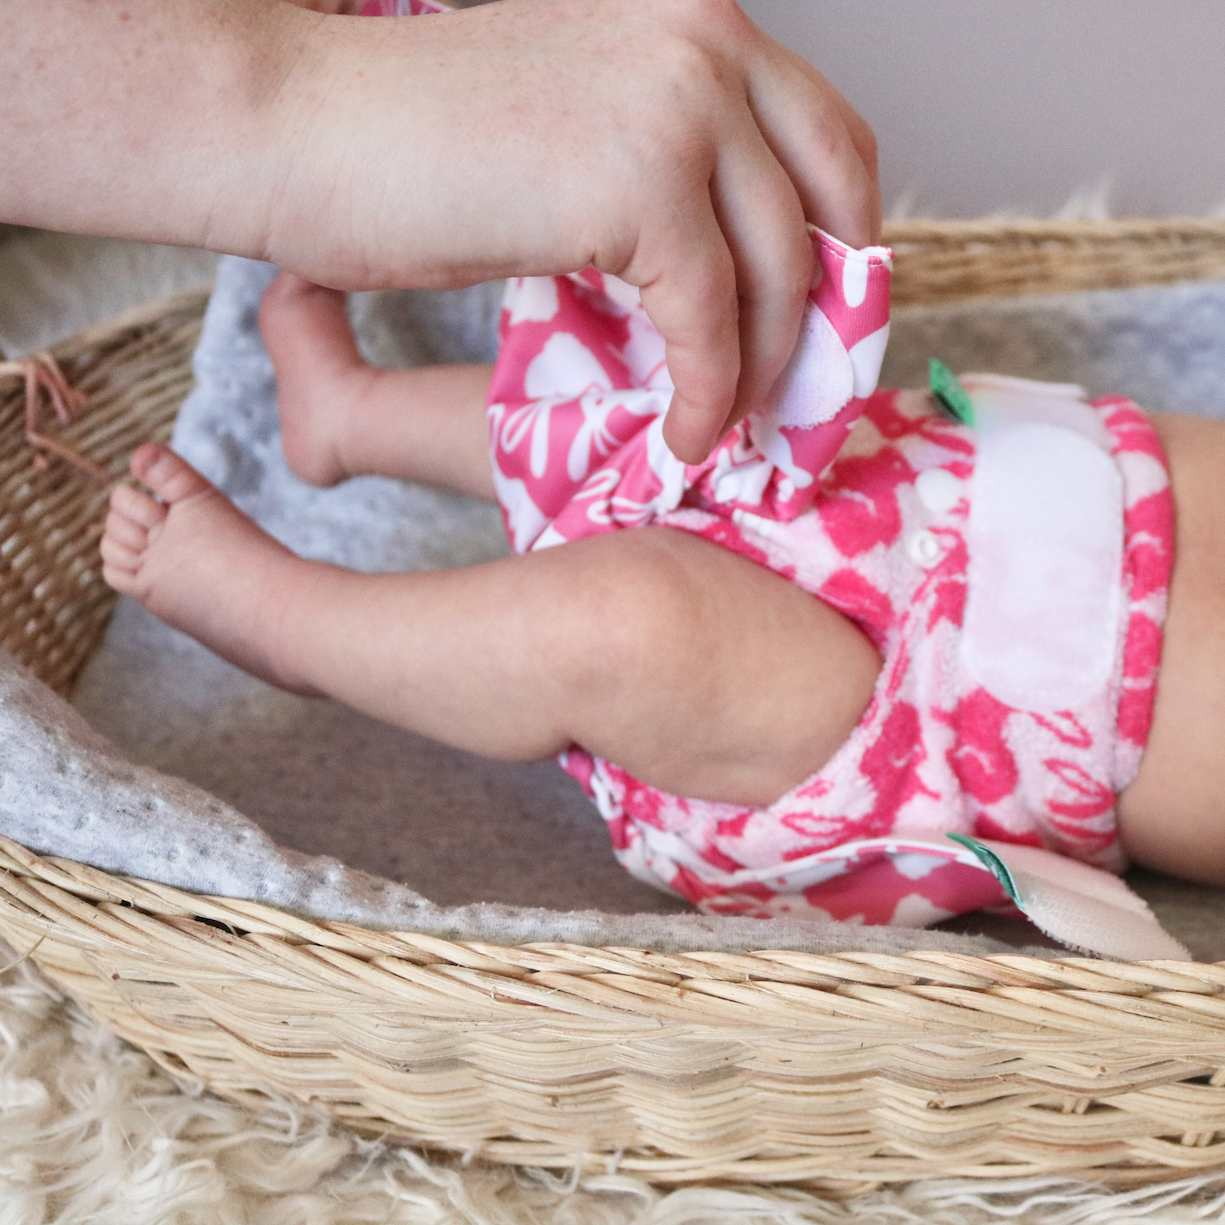 Parent putting on Reusable Nappy pink and white pattern in changing basket with blanket